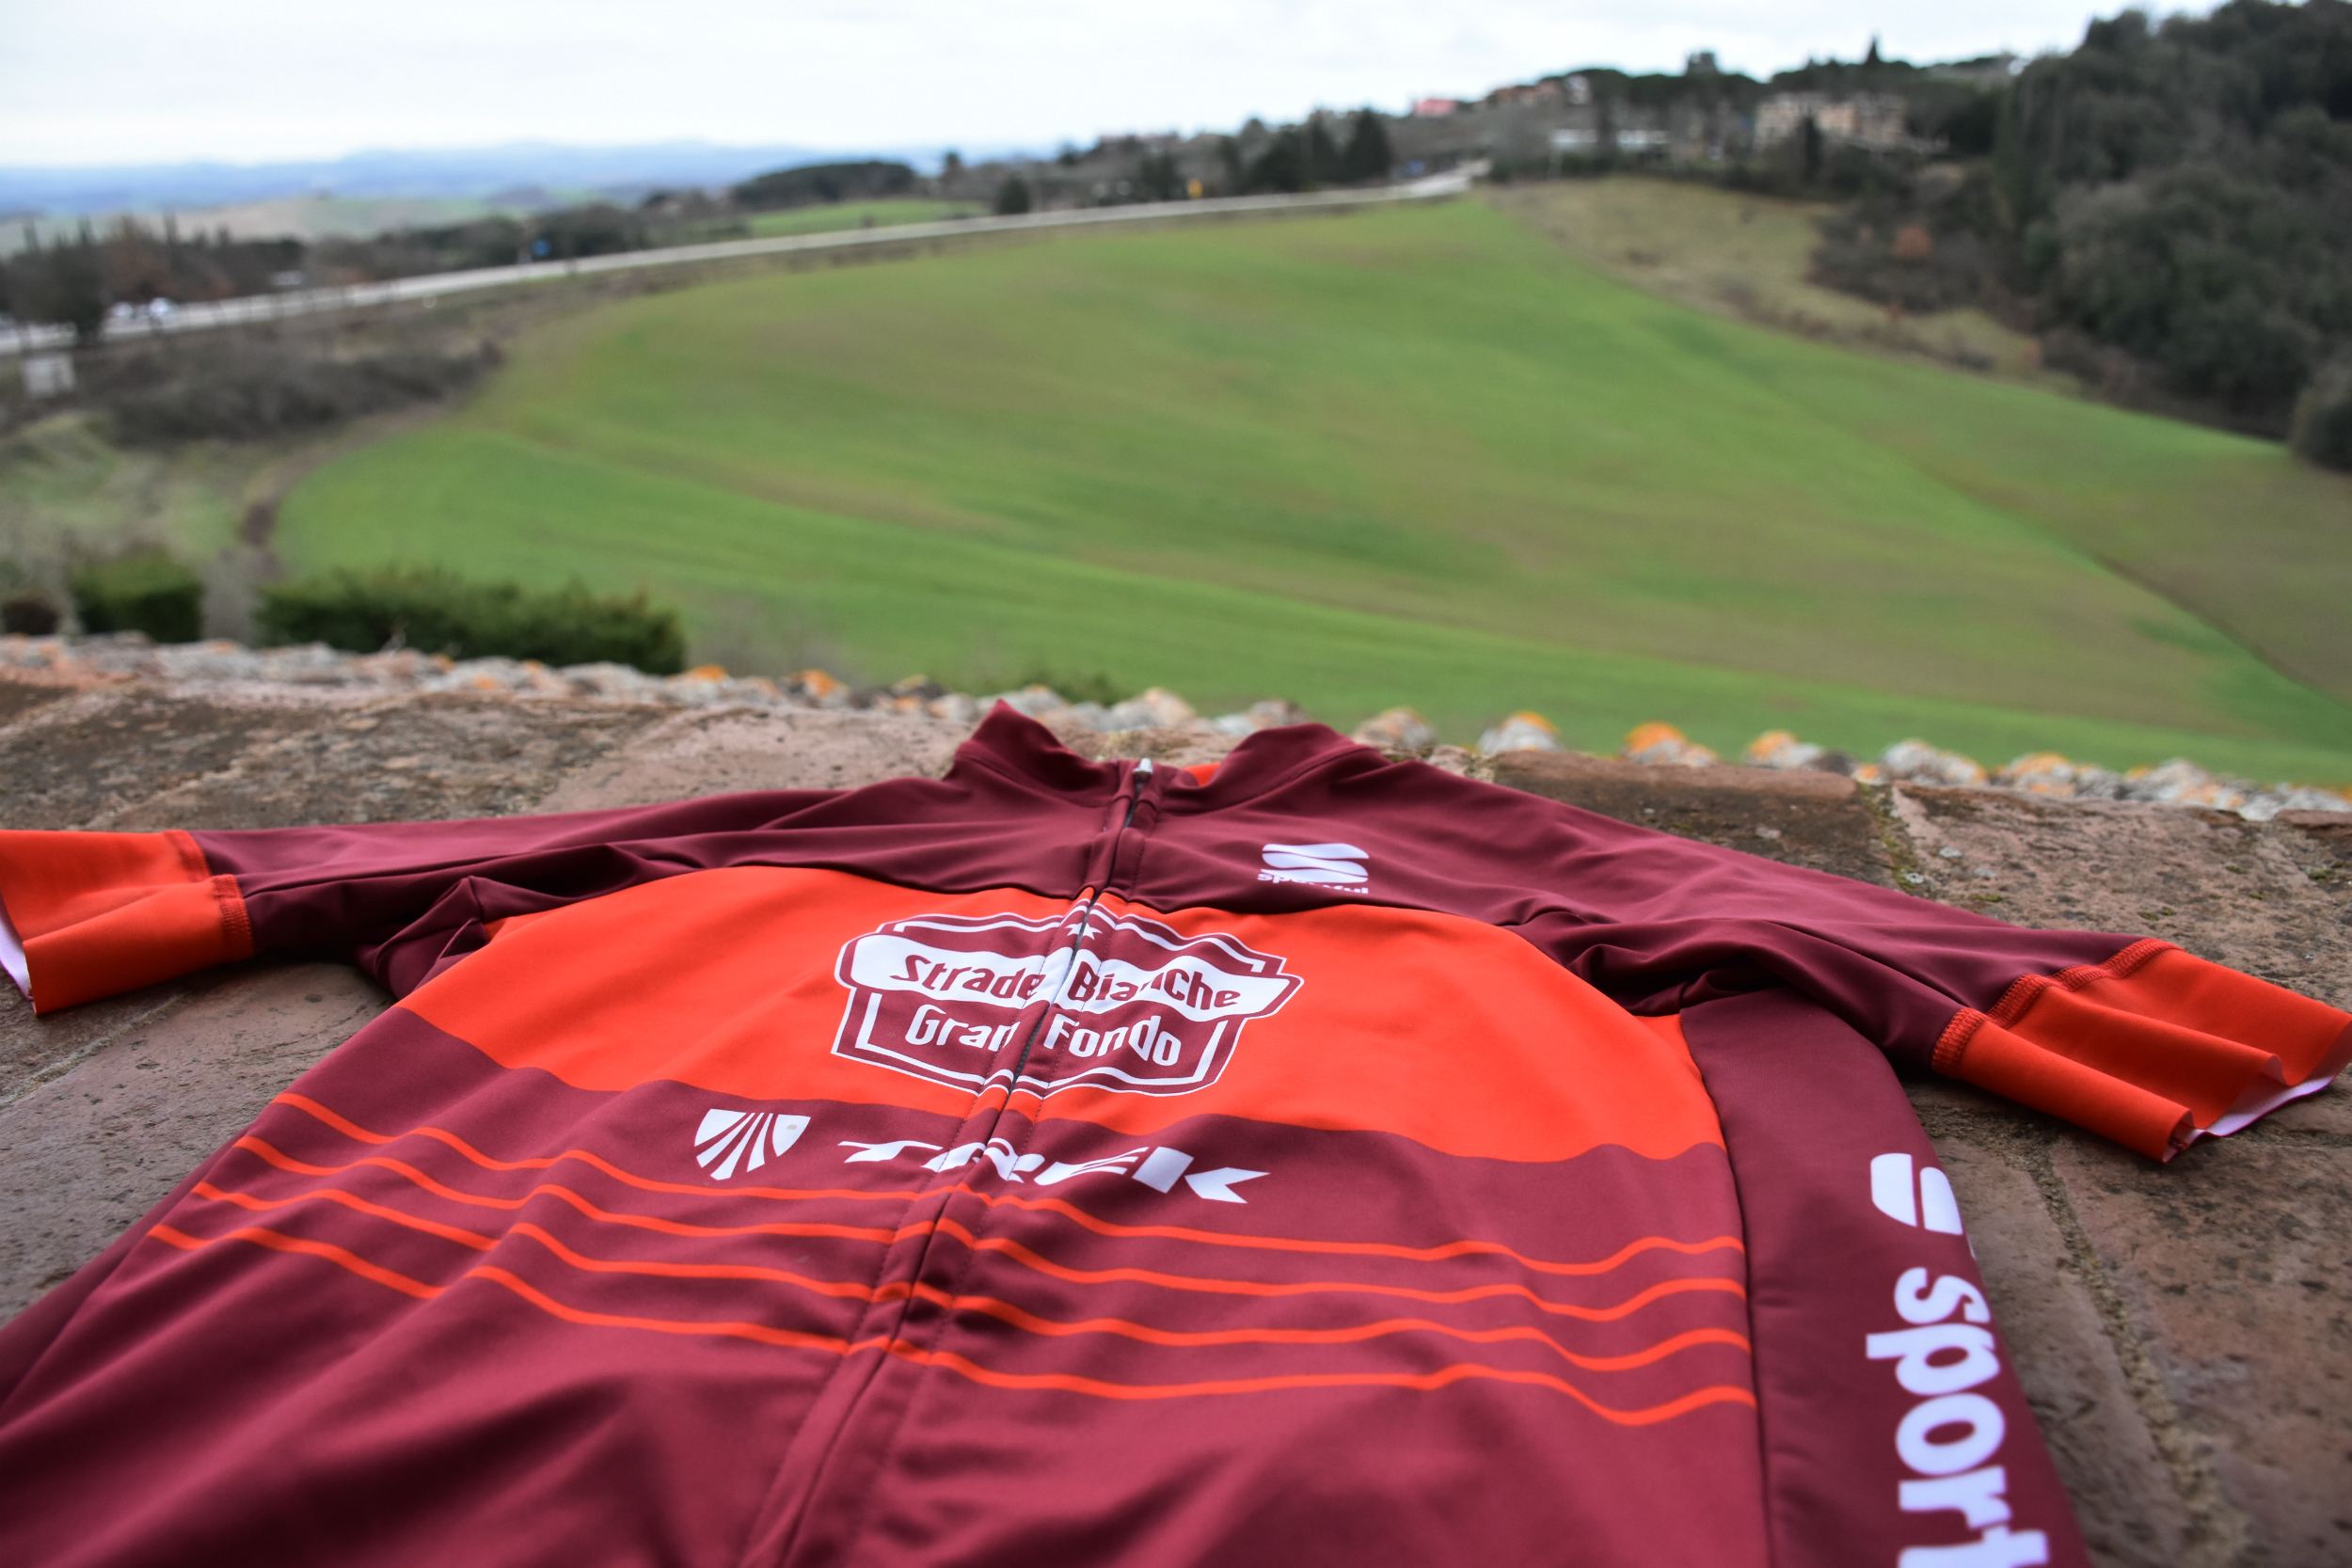 The bodyfit pro classics jersey on a windowsill in Tuscany.